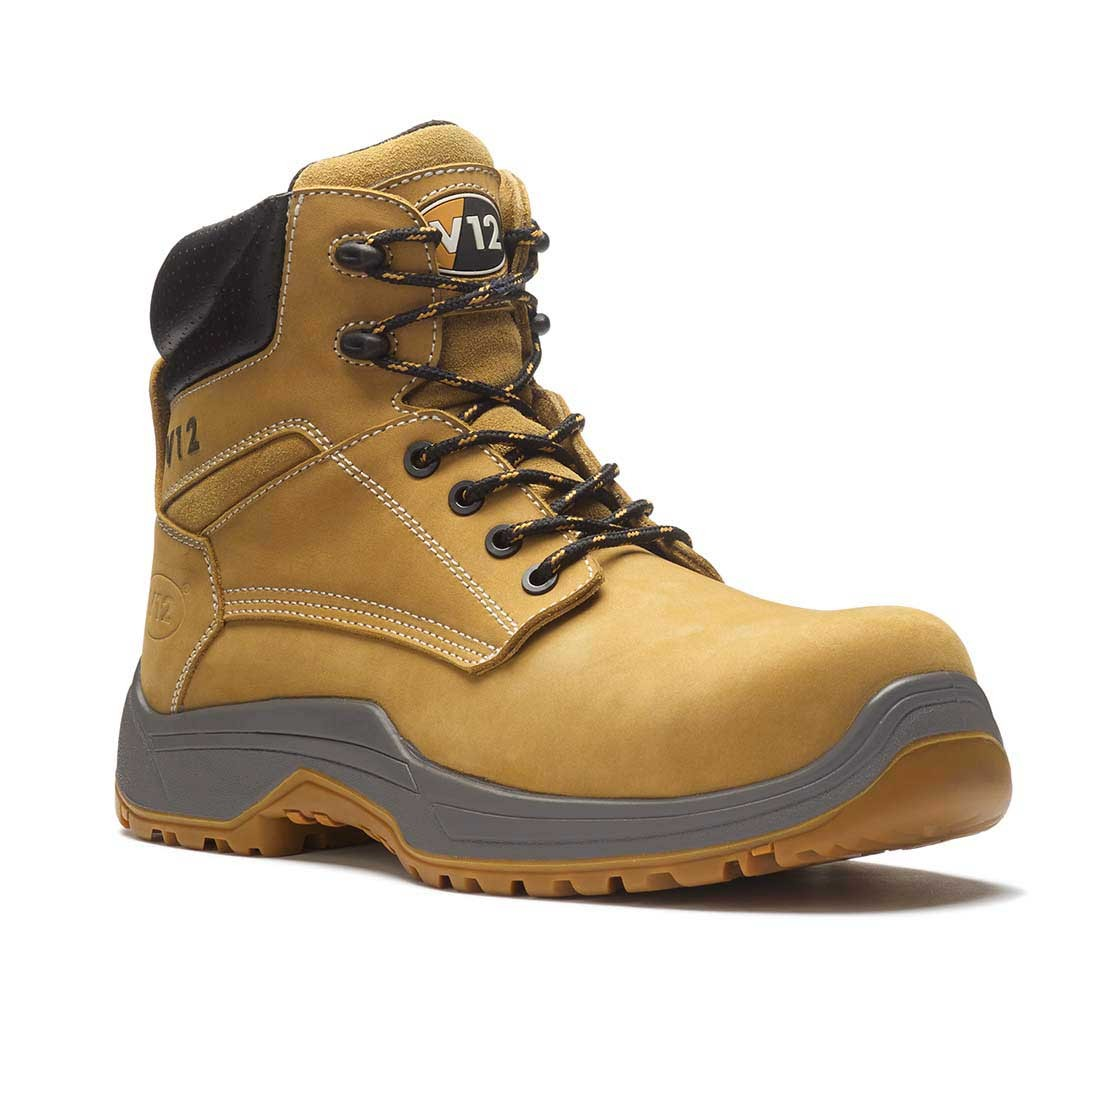 V12 Puma Honey Nubuck VR602 IGS Metal Free Lightweight Unisex Safety Boots